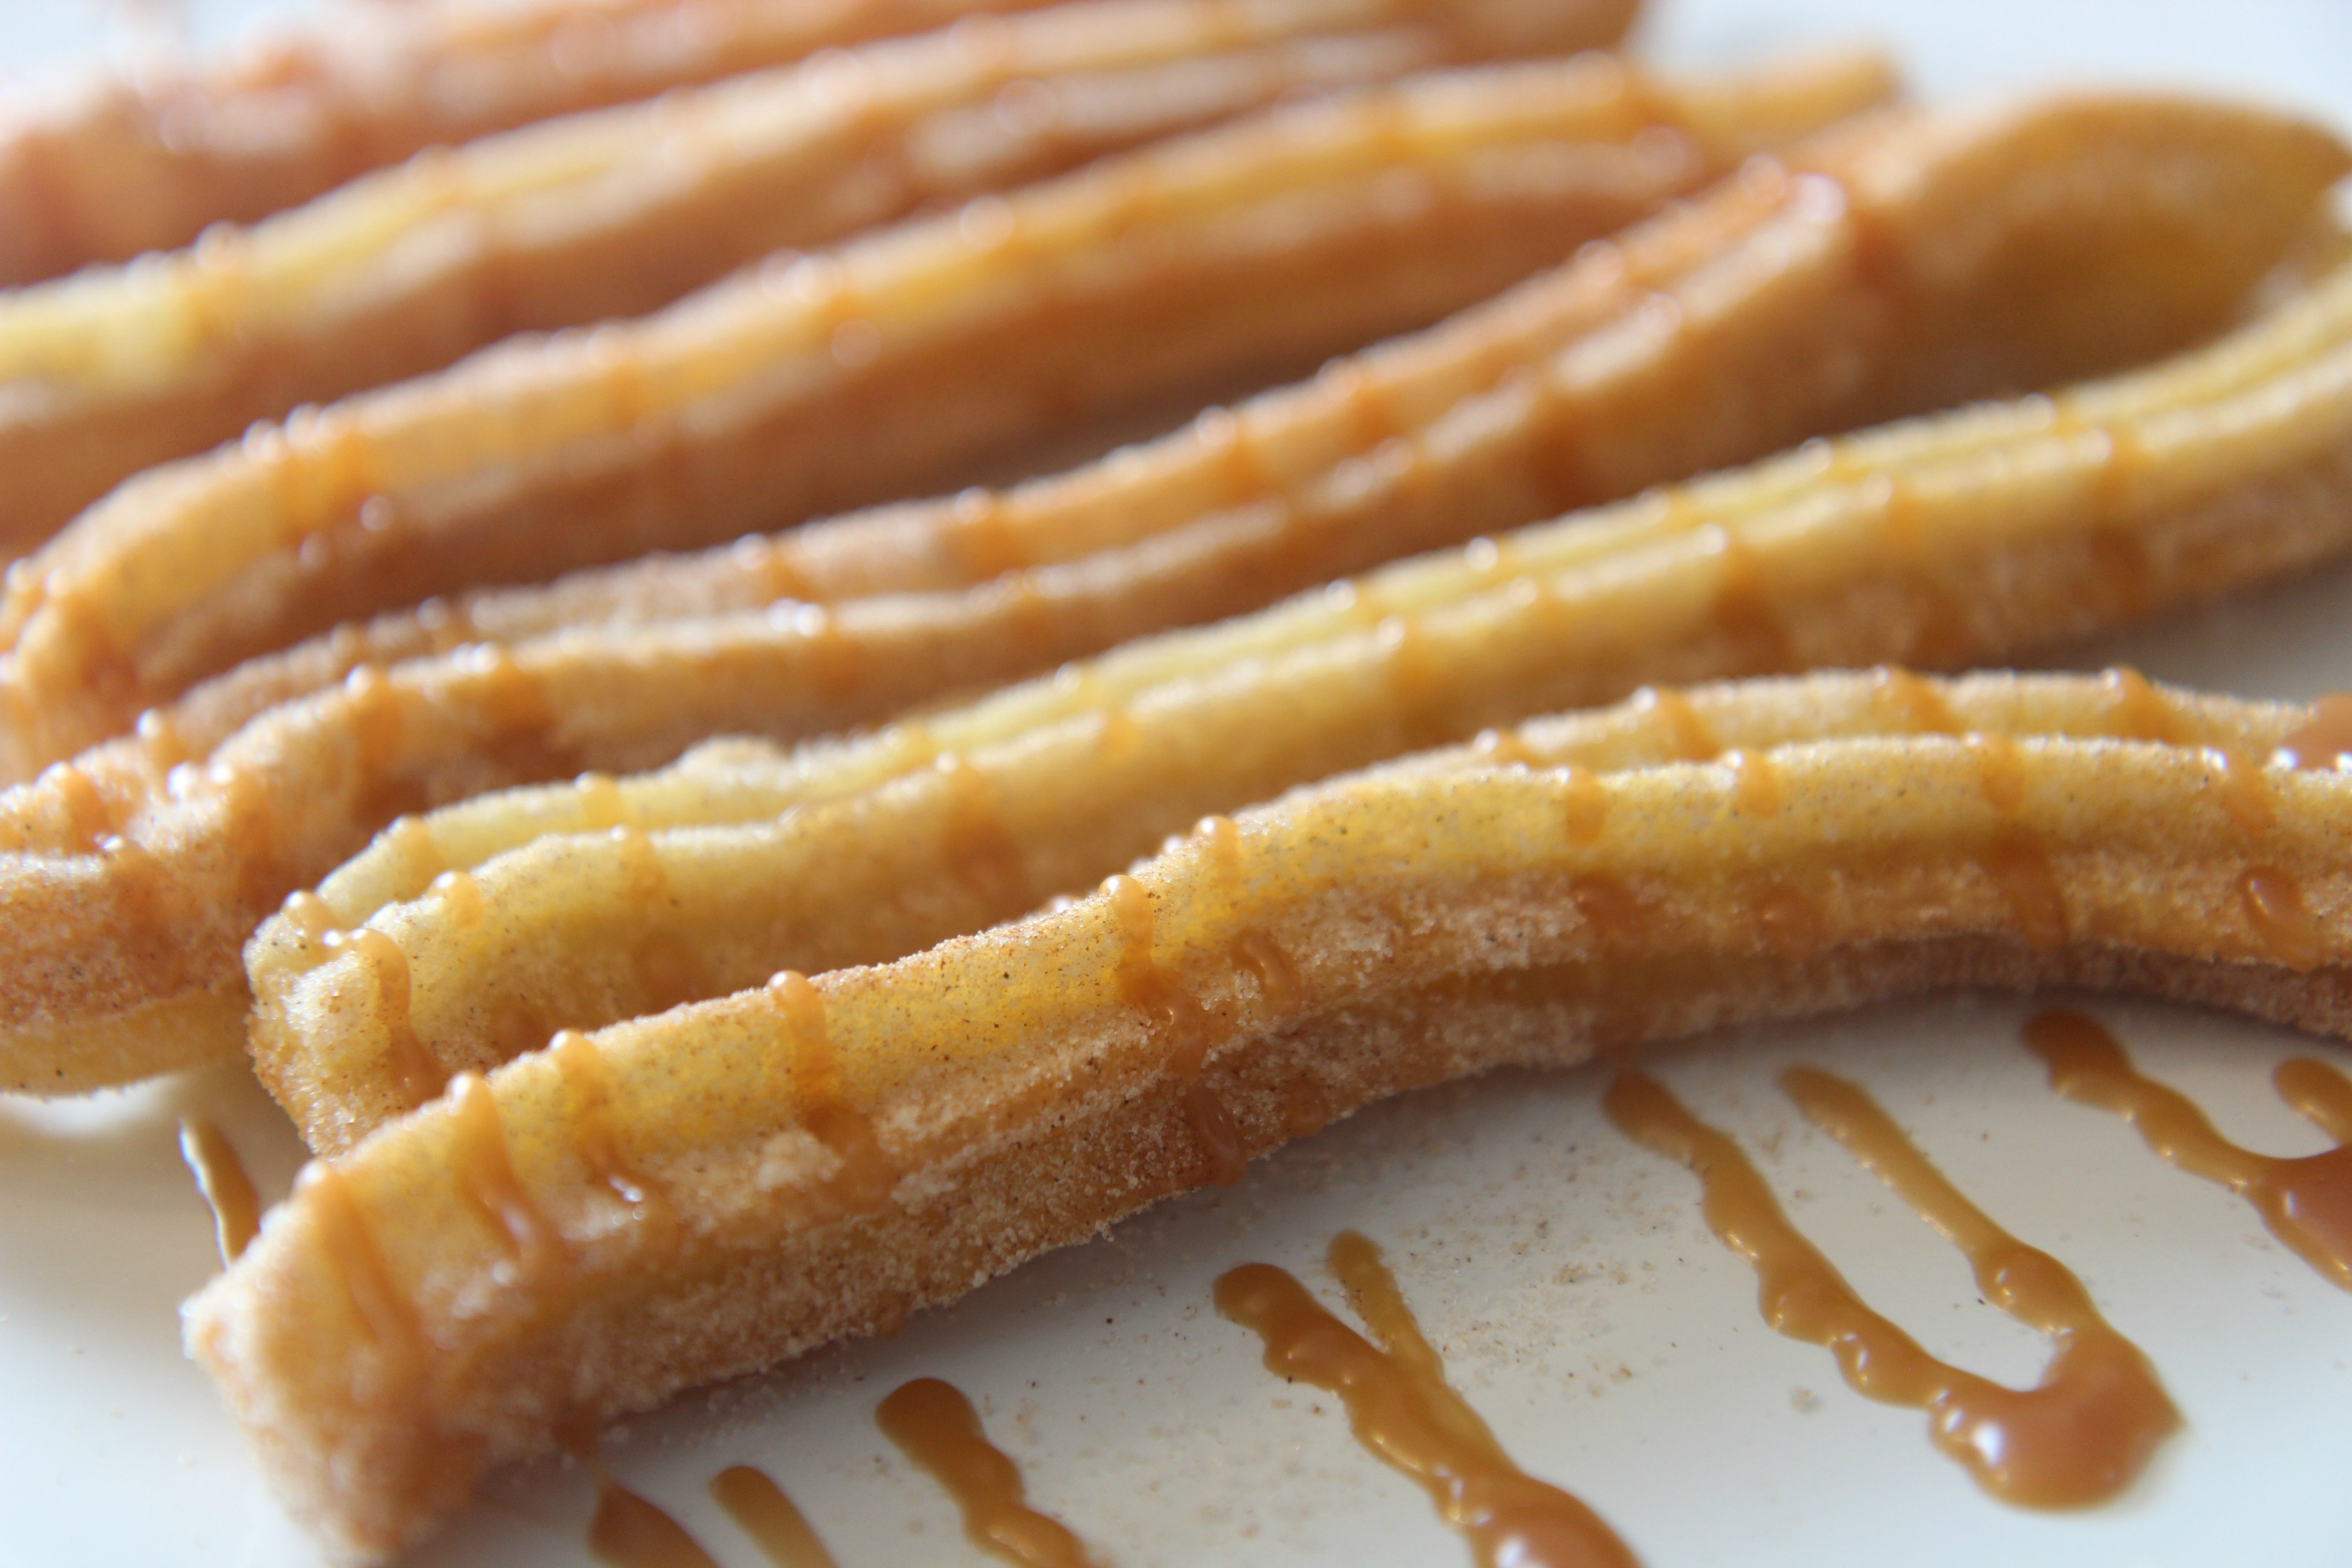 You can drizzle them with caramel as well.